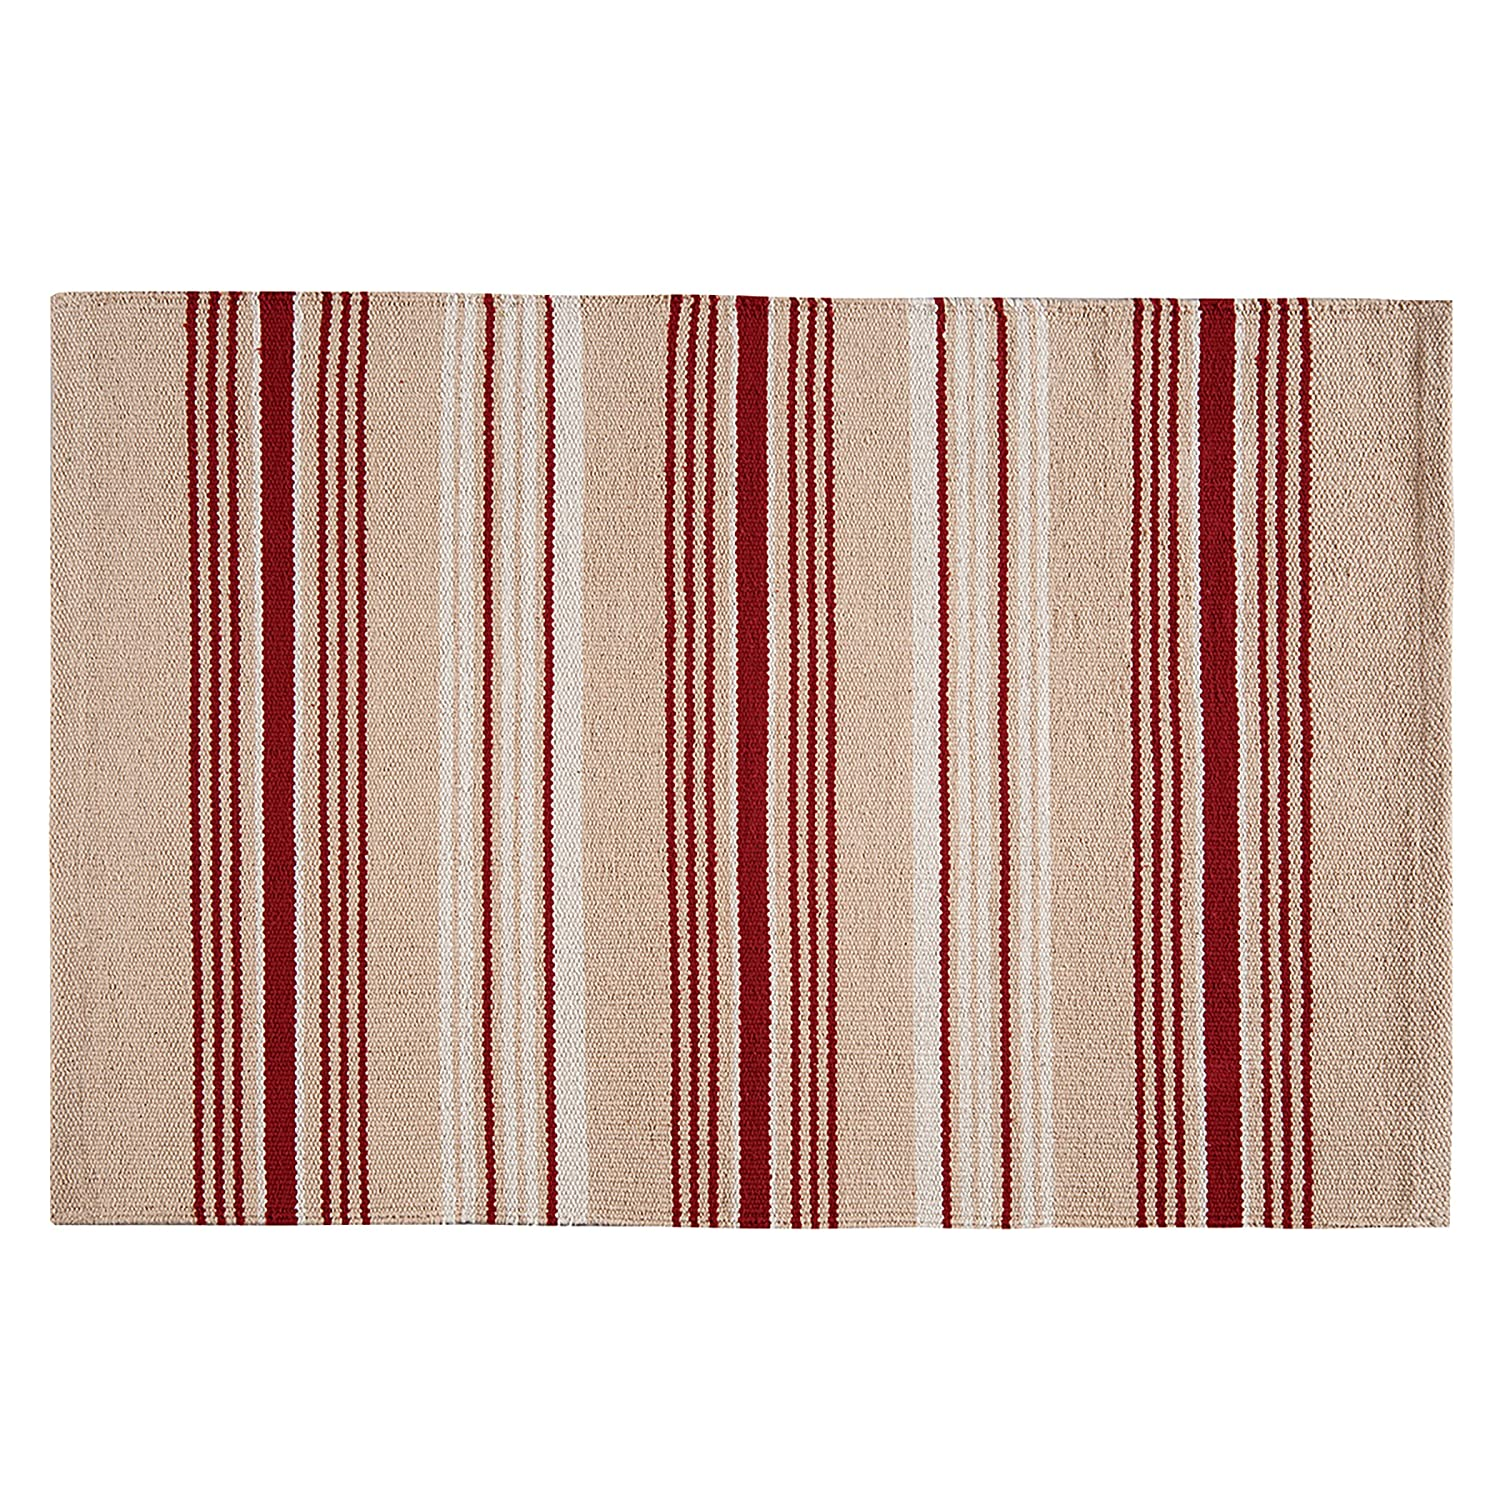 French Red Stripes Rug (3